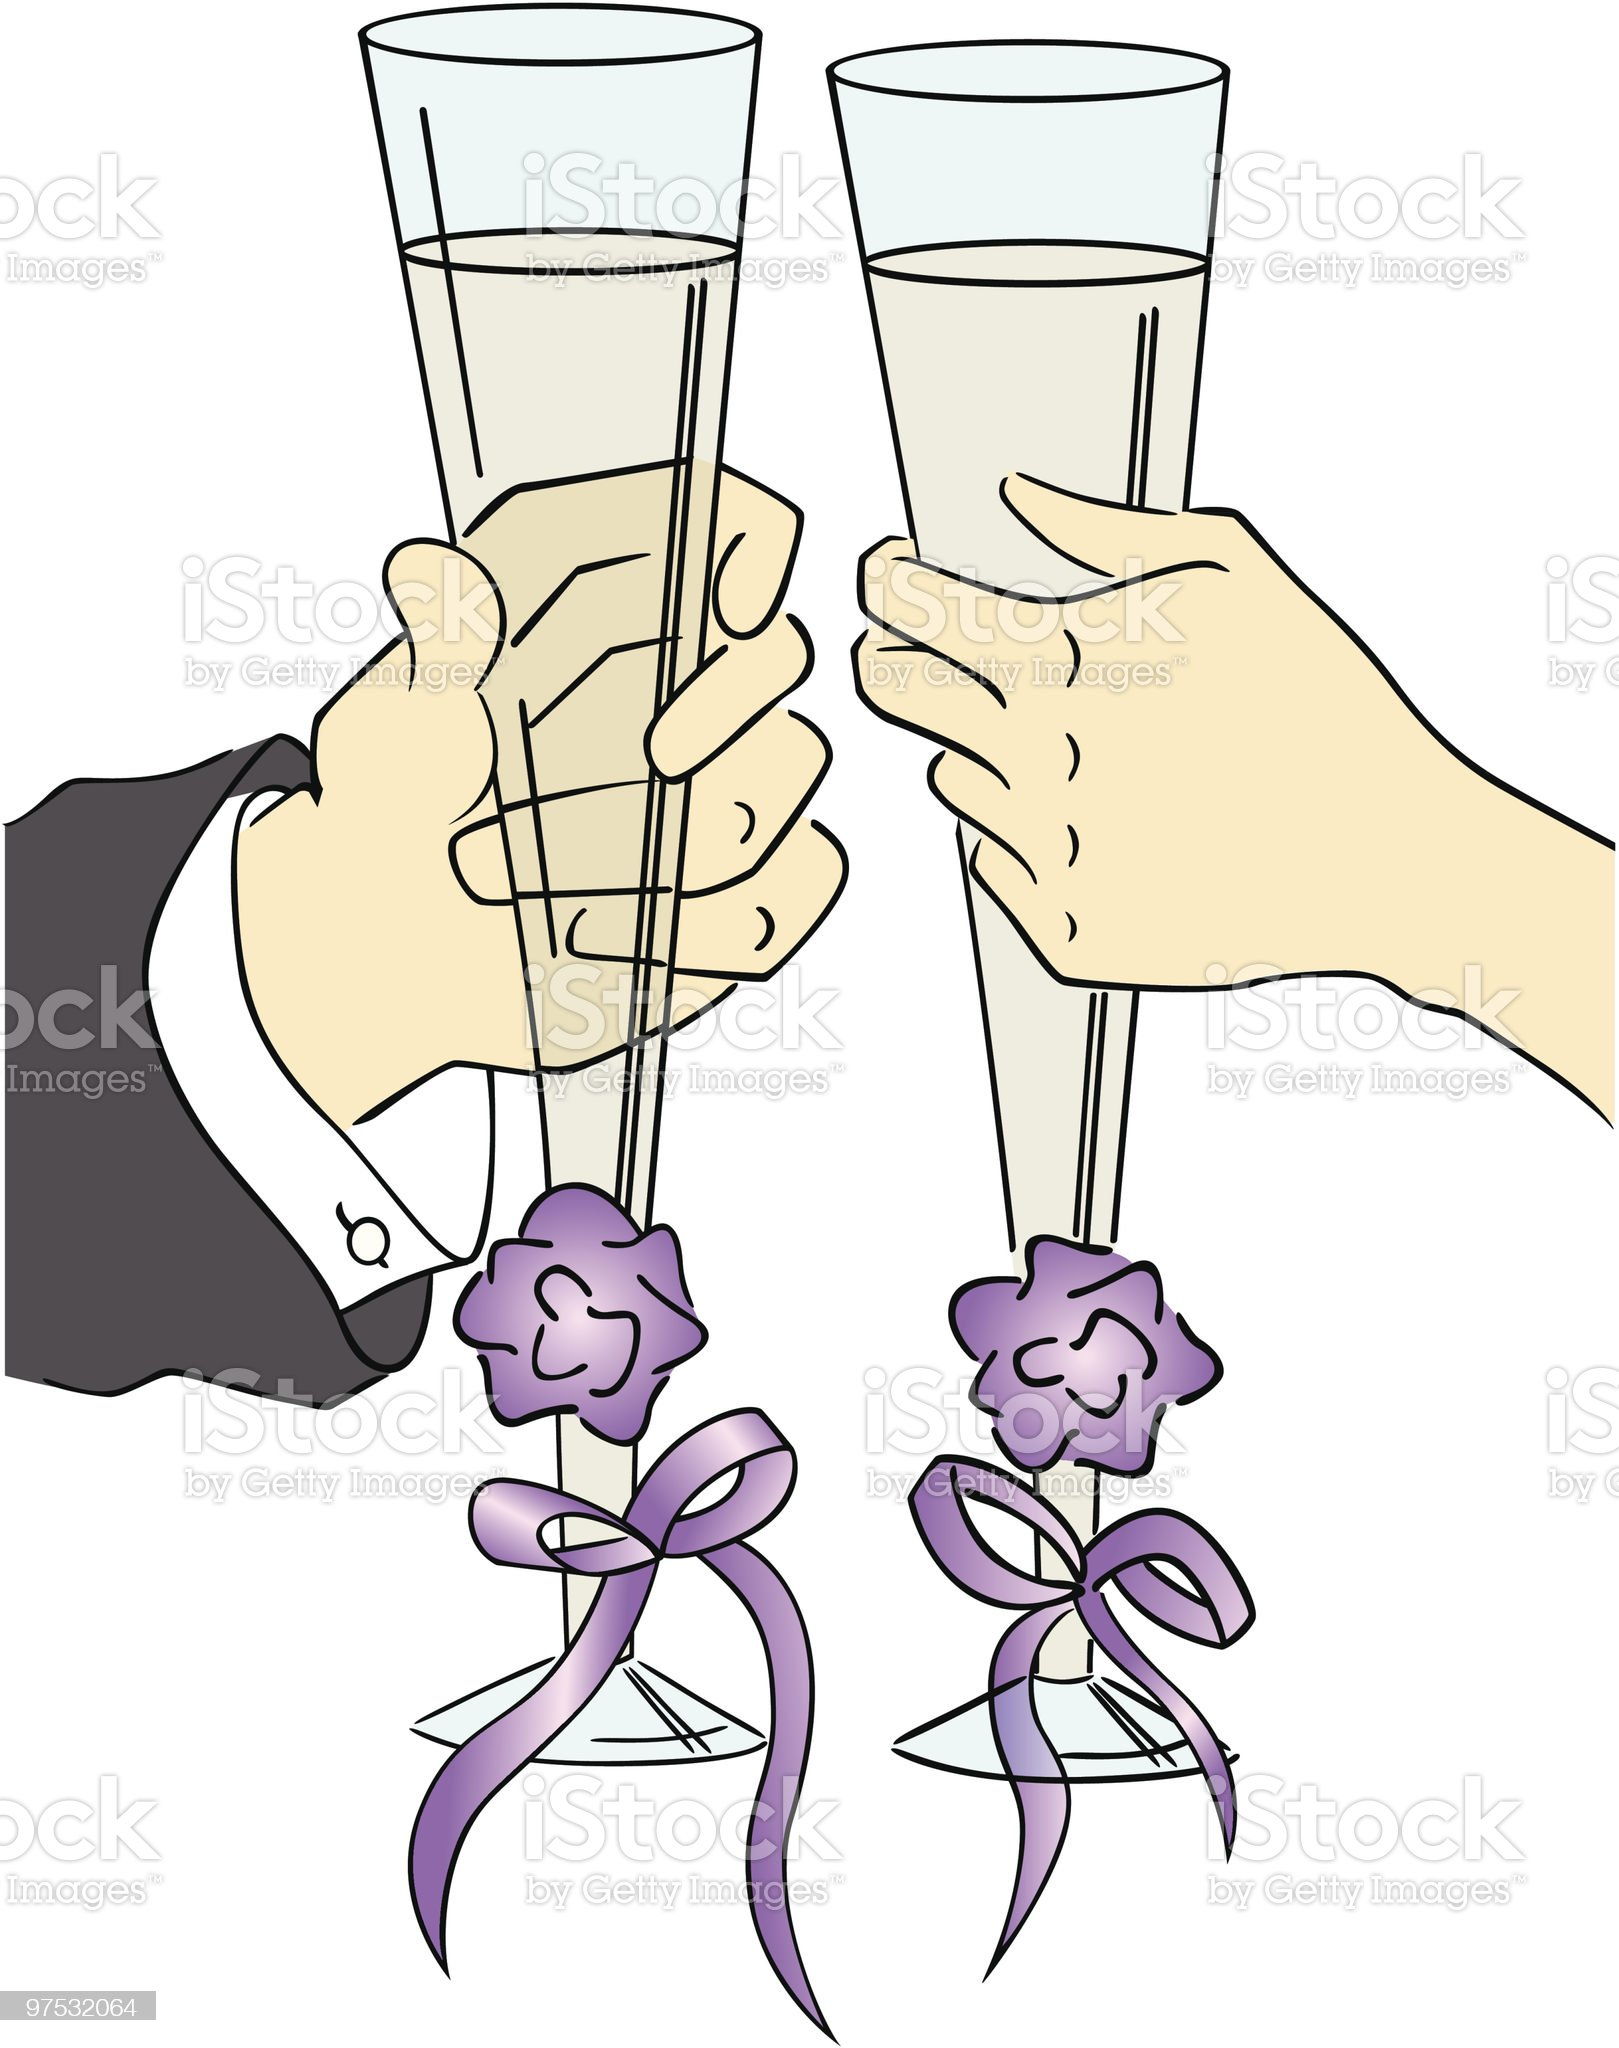 two champagne glasses royalty-free stock vector art